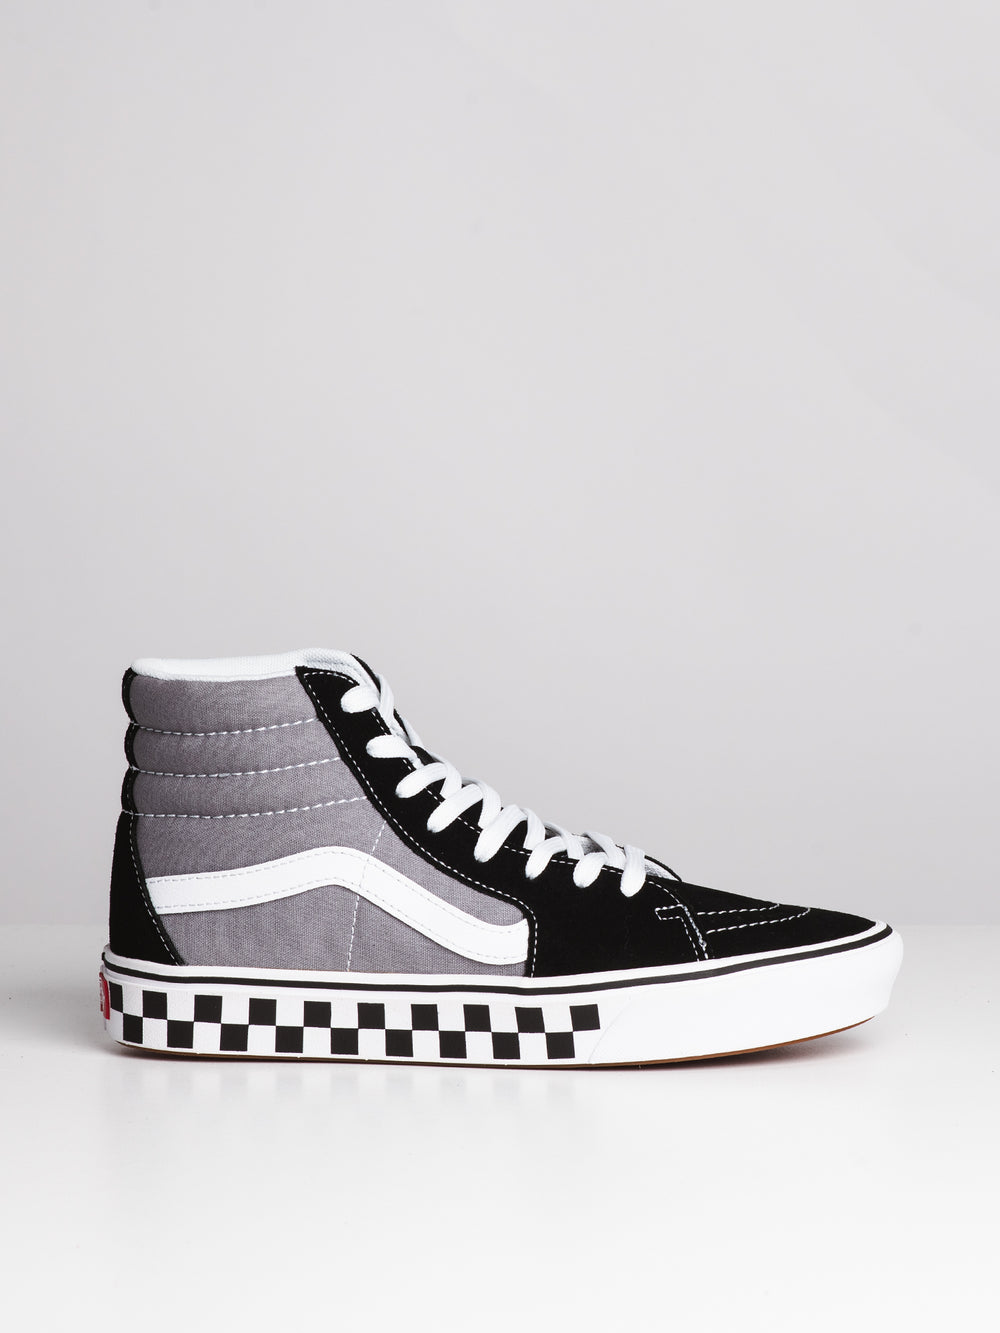 MENS COMFYCUSH SK8 HI - BLACK/GREY